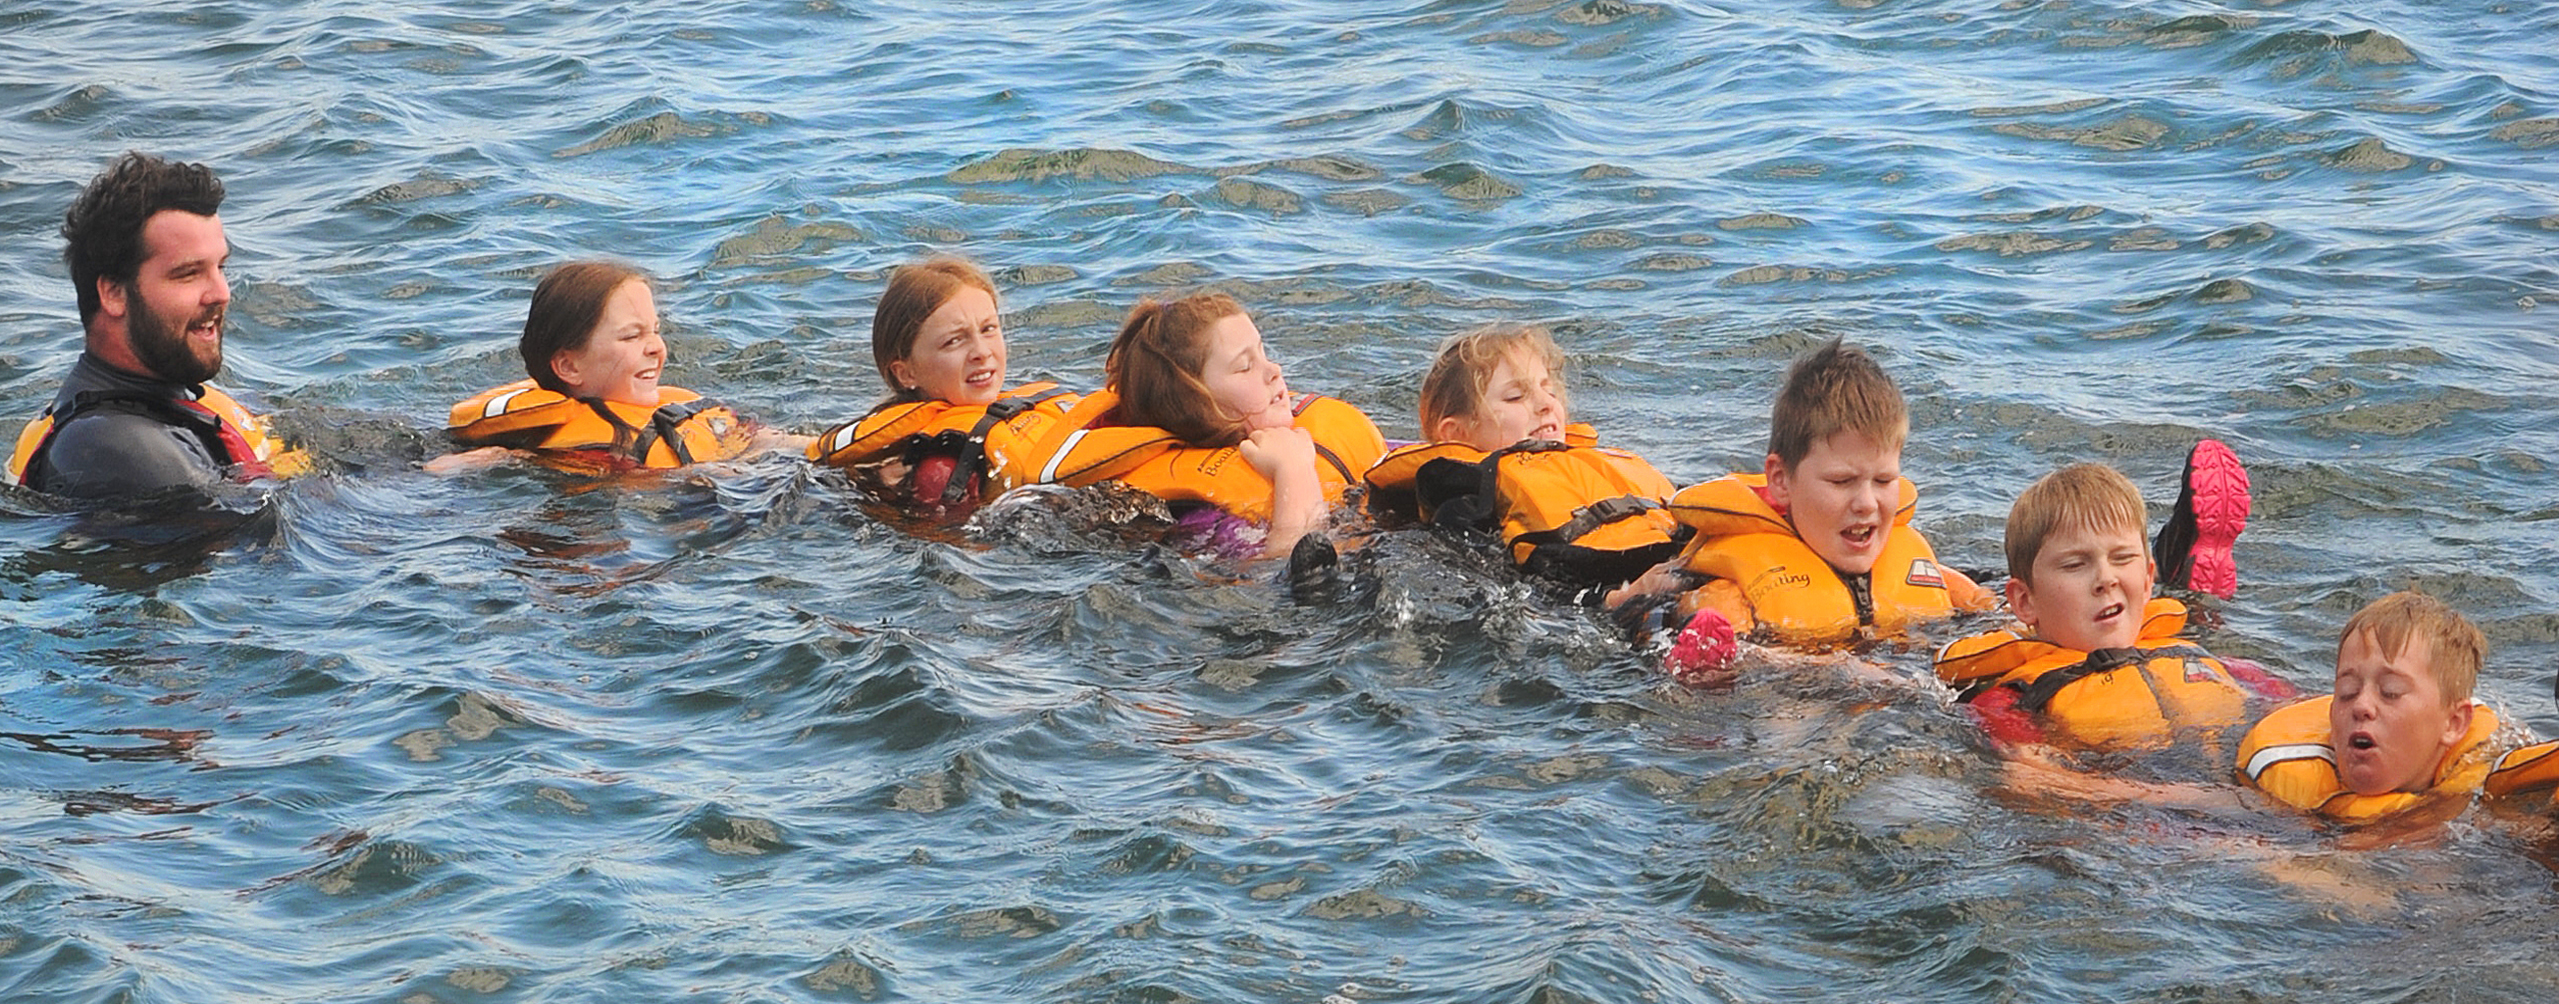 As part of their water safety programme, Swimsation instructor Ben Harrison and (from left) Imogen Harrison (10), Melanie Button (10), Grace Gemmell (9), Harmony Denston (10), James Scott (9), Ben Thompson (9) and Robbie Smith (10) form a rescue train in